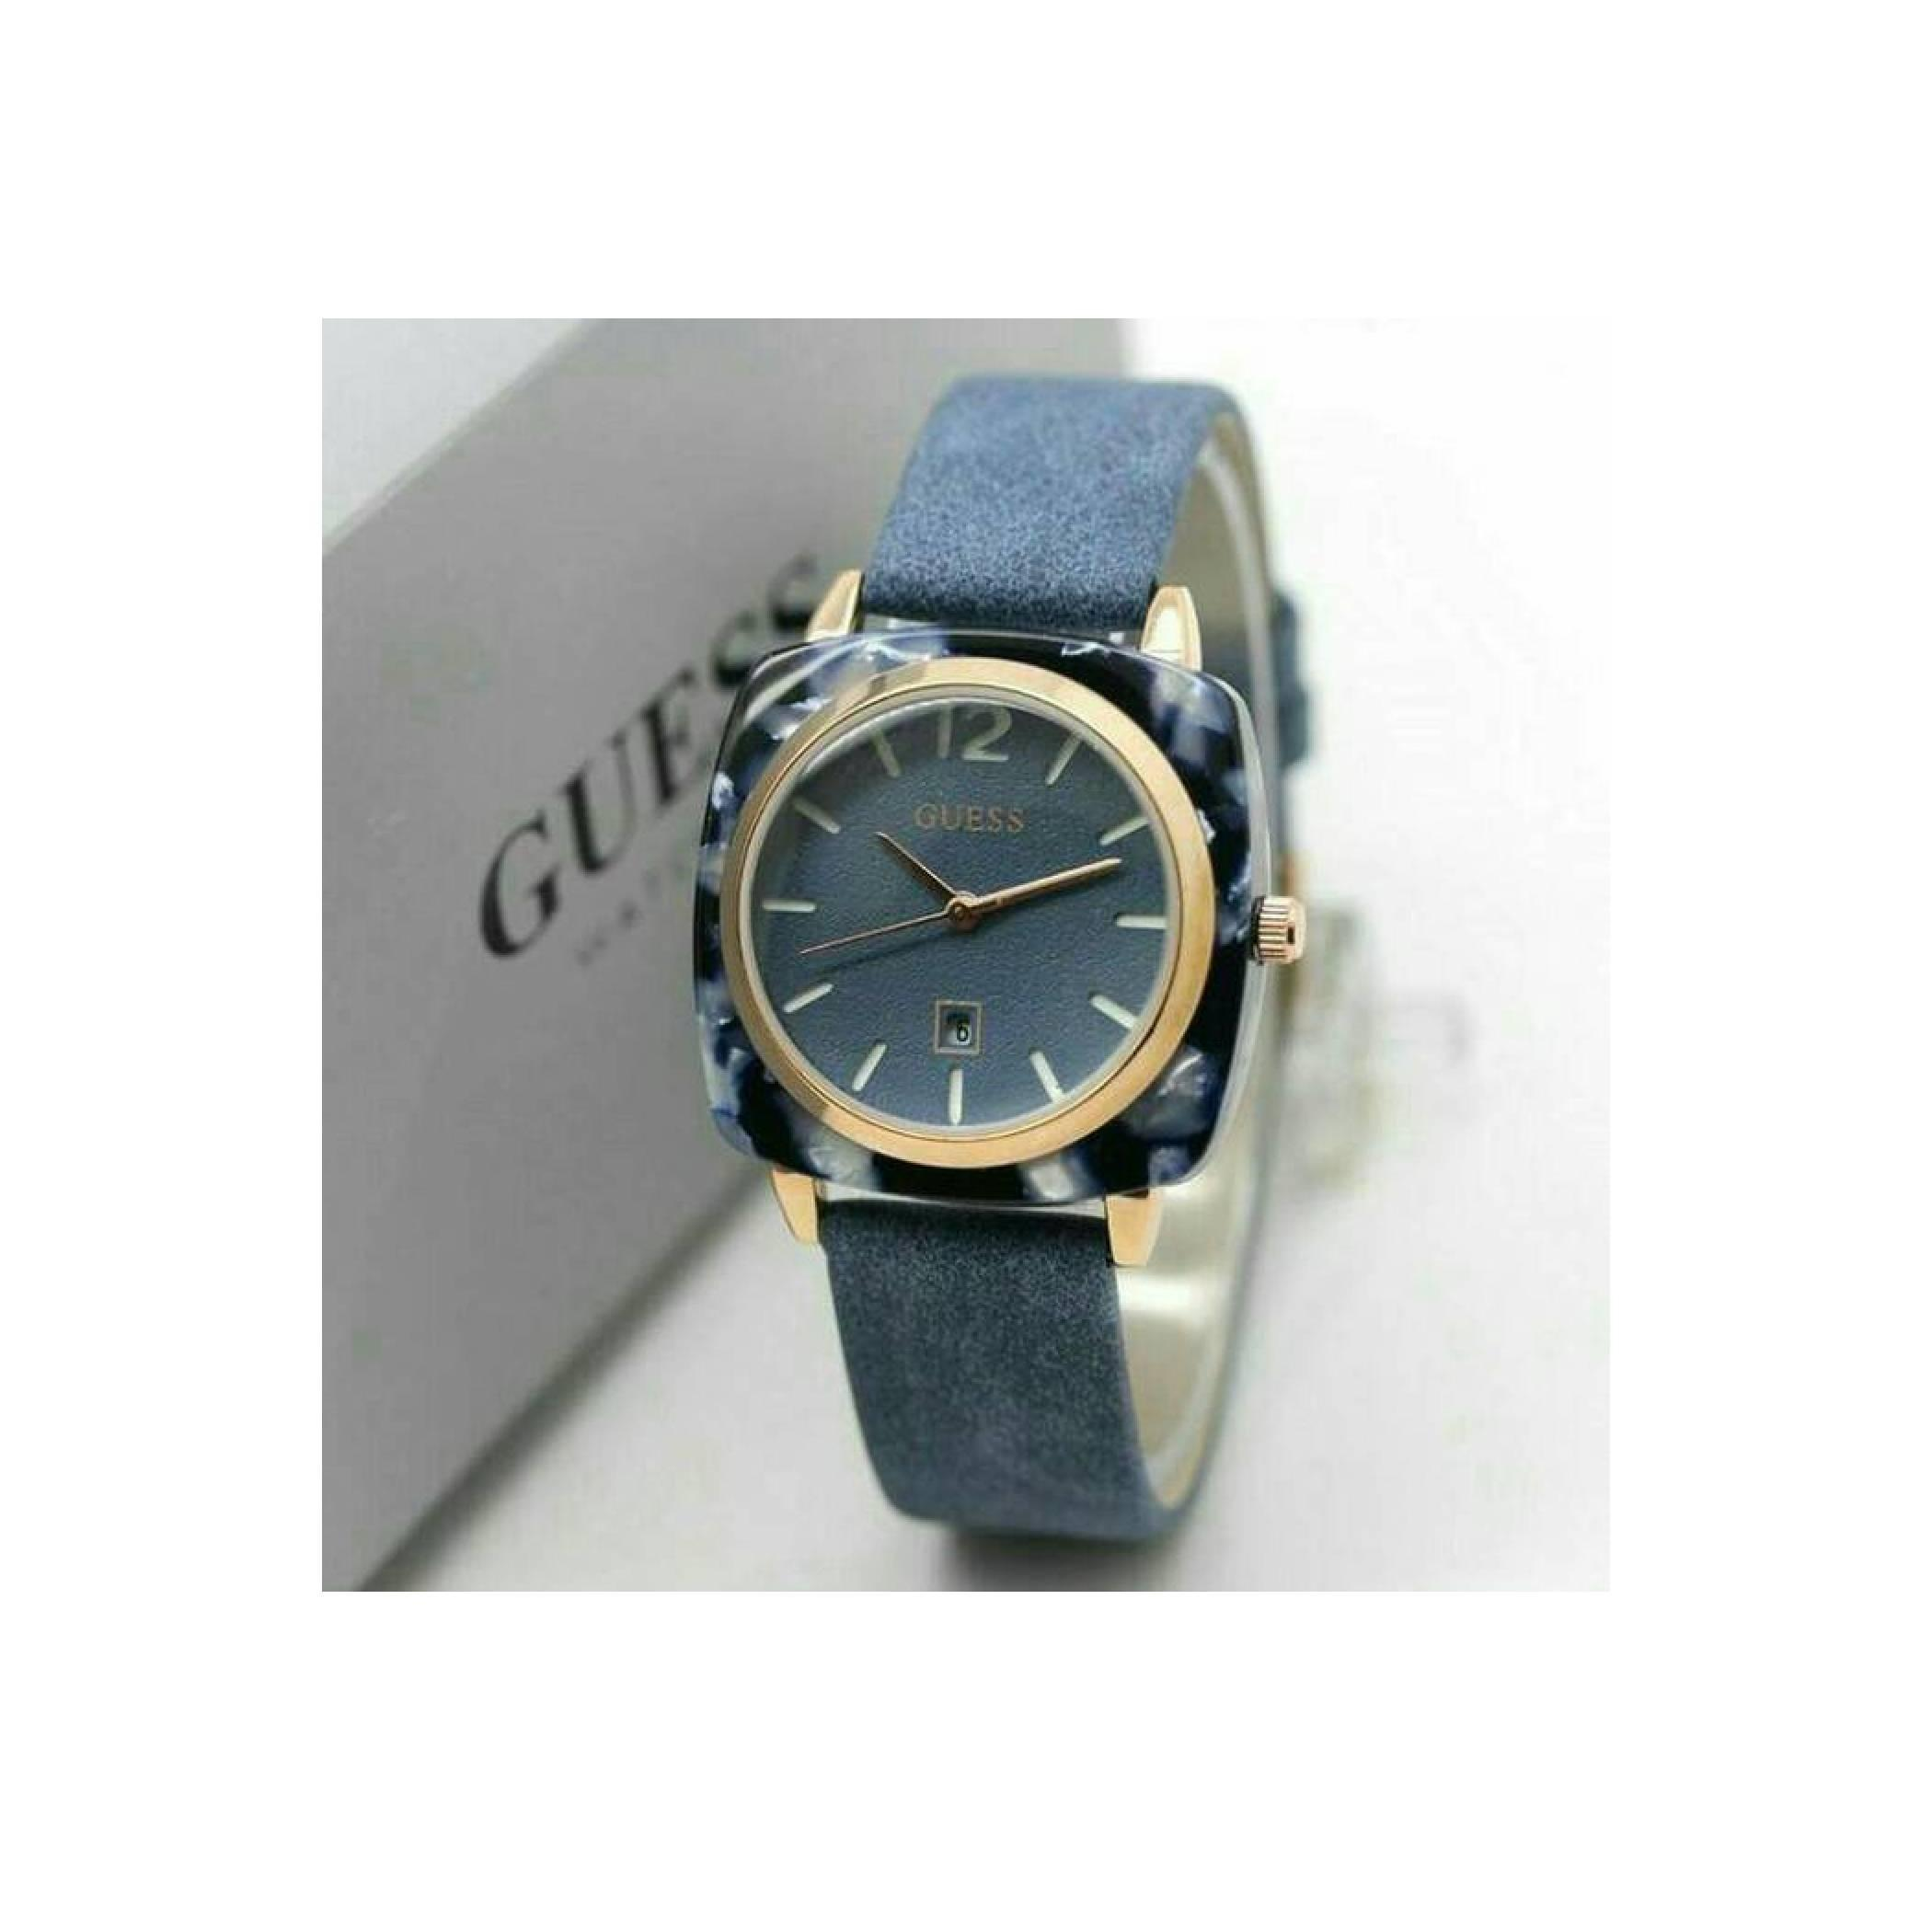 Guess W0149l5 Overdrive Jam Tangan Wanita Navy Blue Rubber Stainless Gc Keramik Bulat Premium2 Cewek Leather